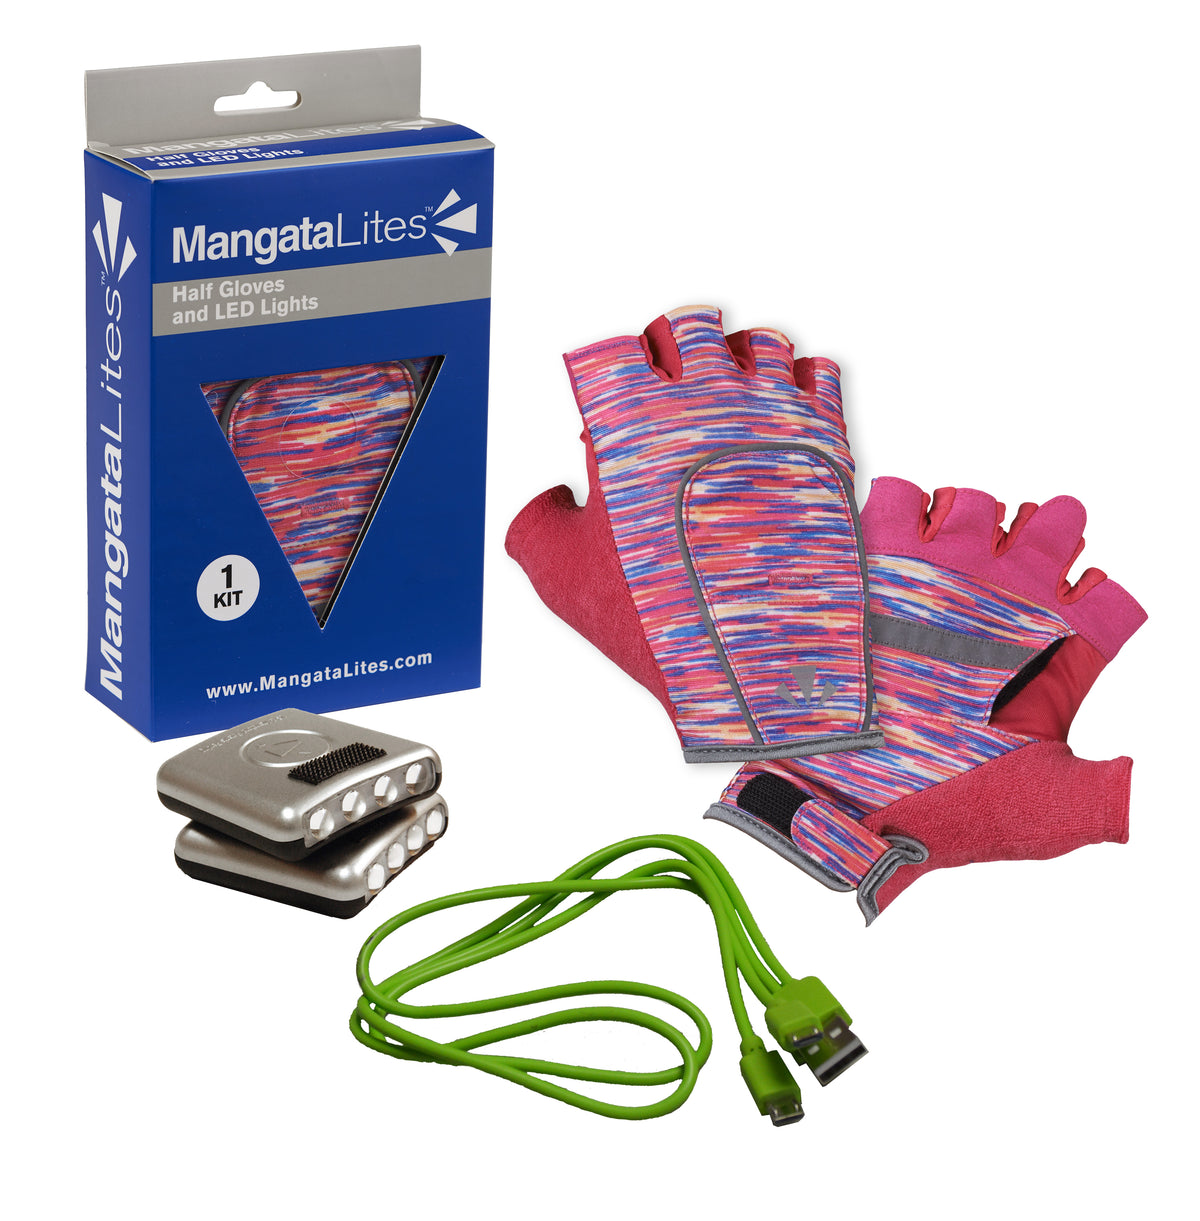 MangataLites Pink Flecks Half Gloves Kit (Lights included)